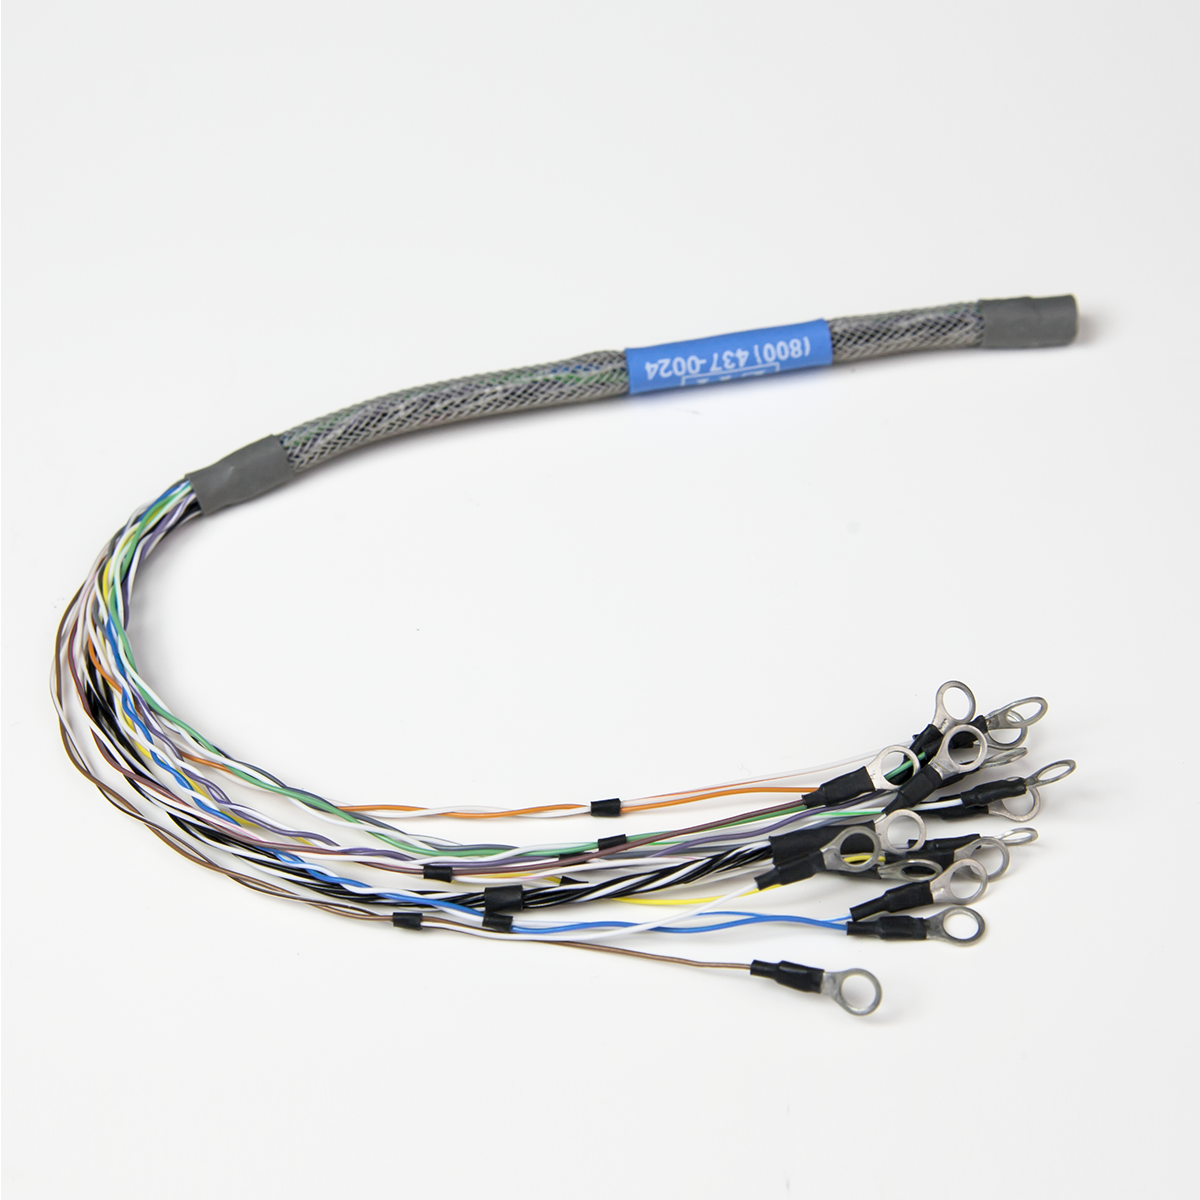 8-Channel EMG Electrode Leads Cable (Replacement) by COAPT